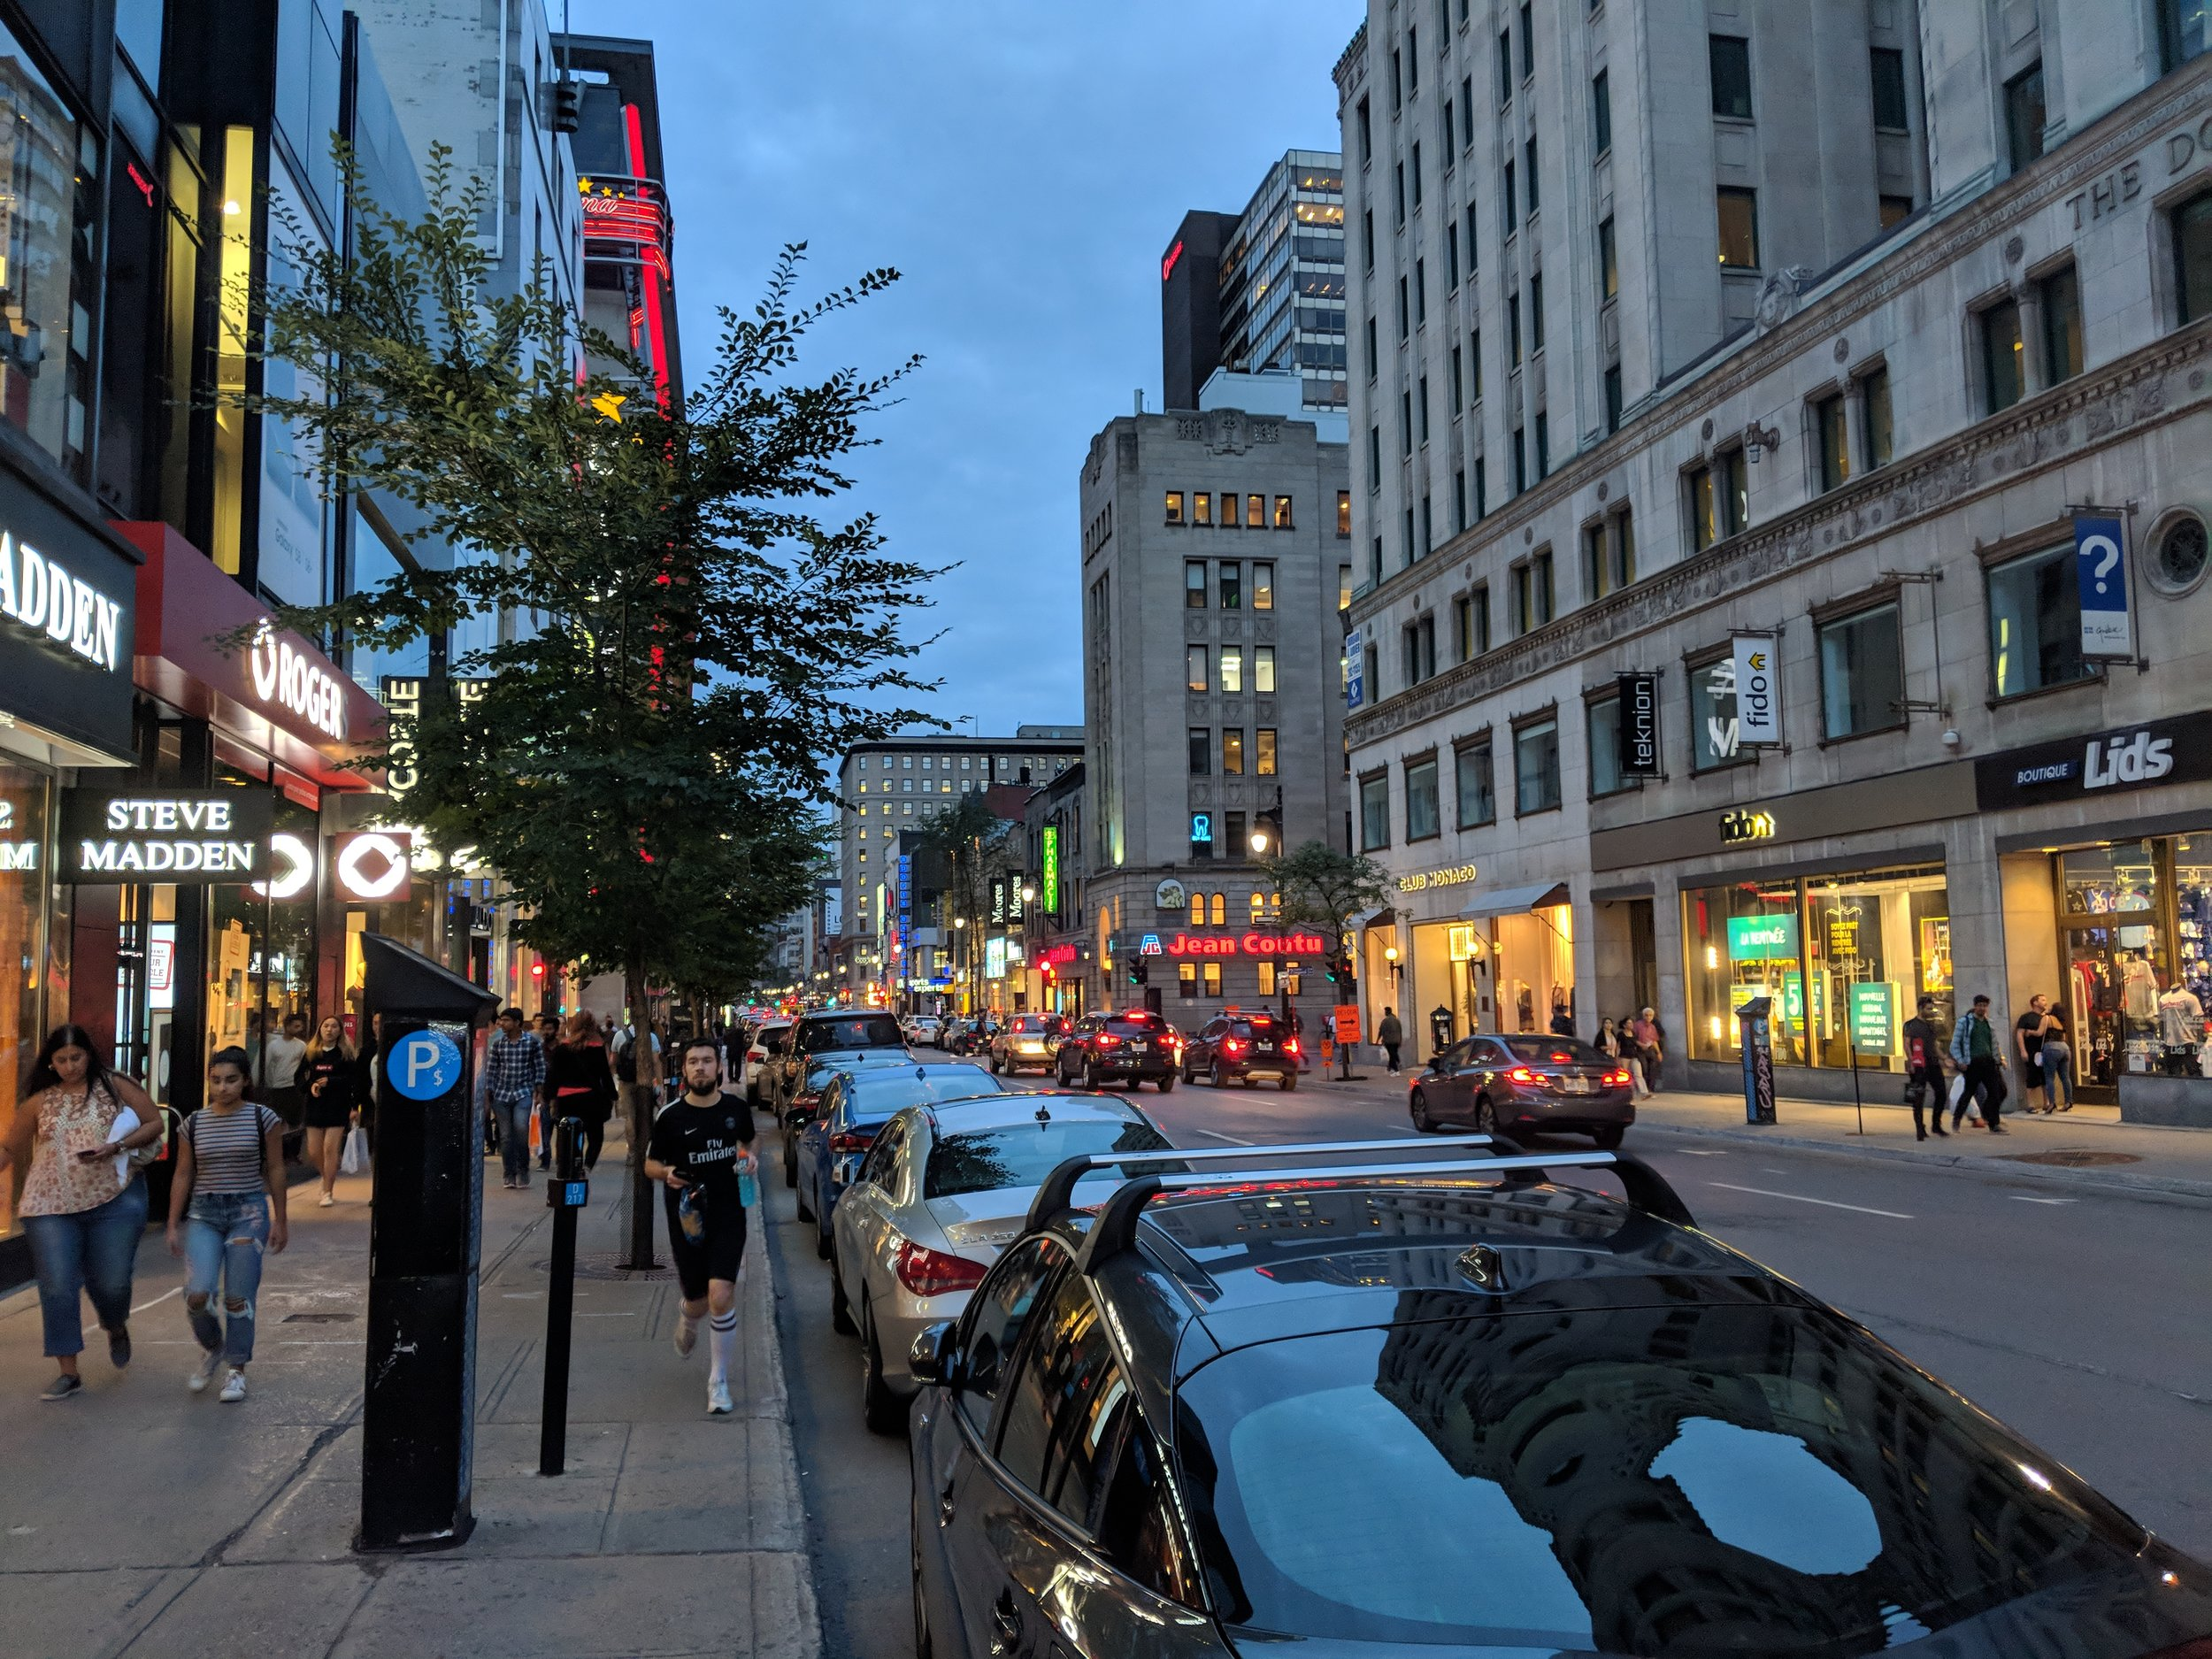 Beautiful! Montreal downtown at night.